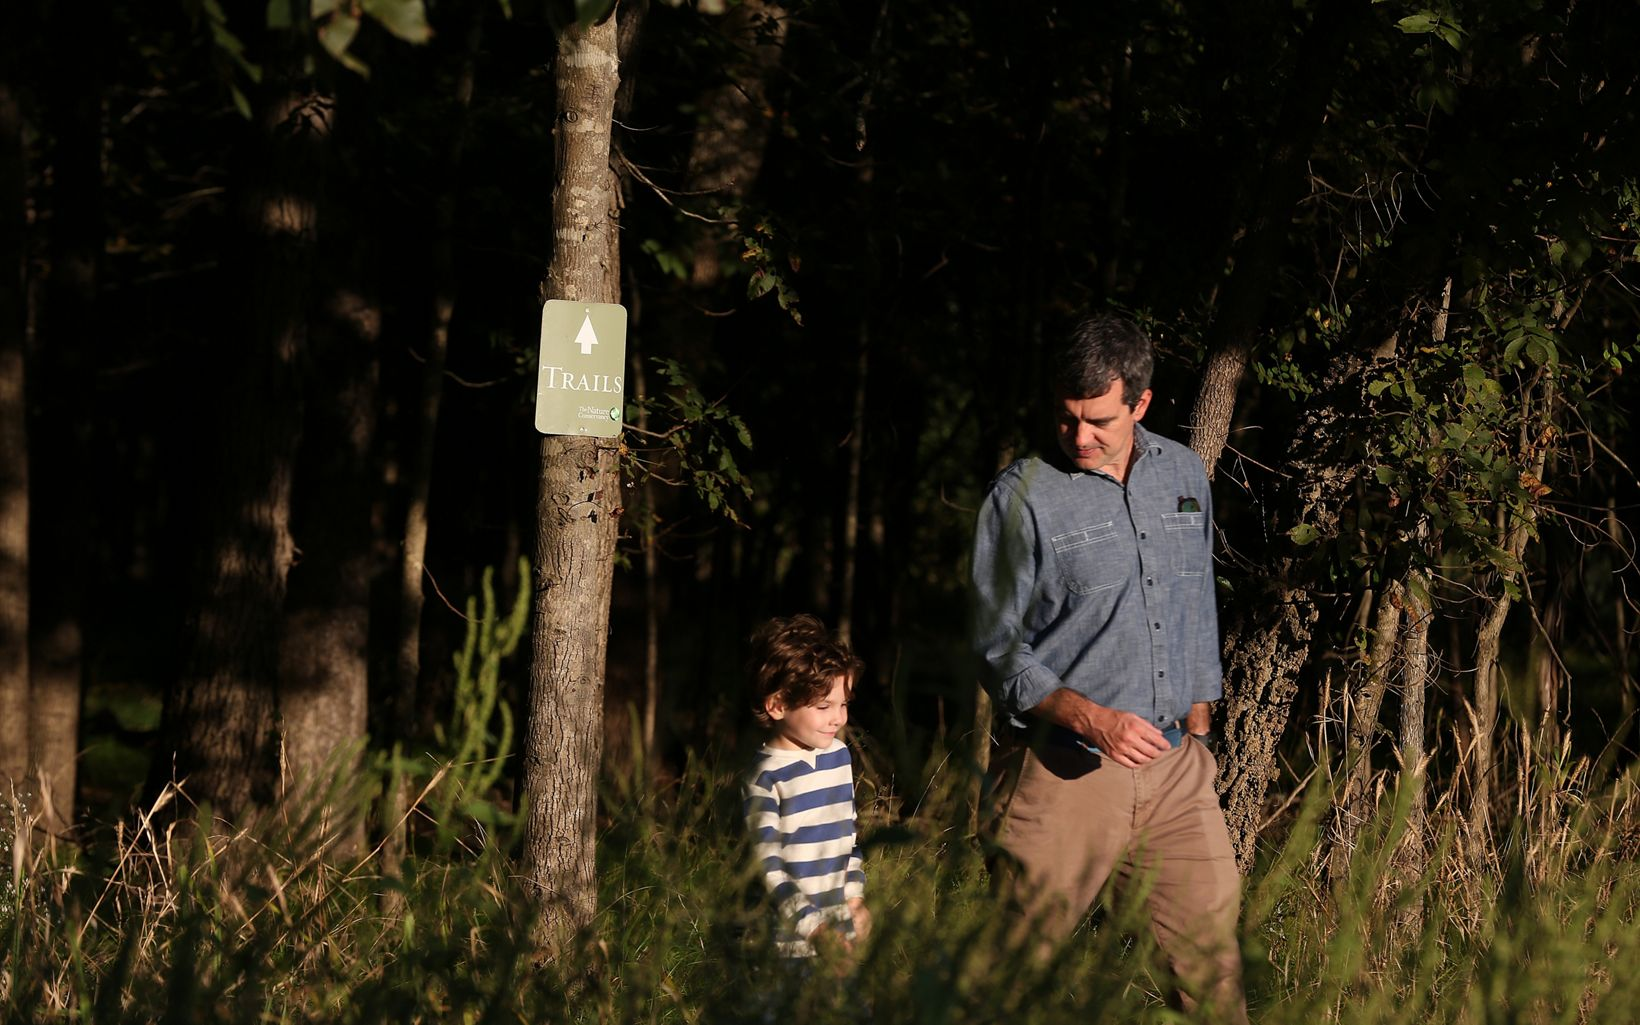 A man and a little boy walking on a trail.